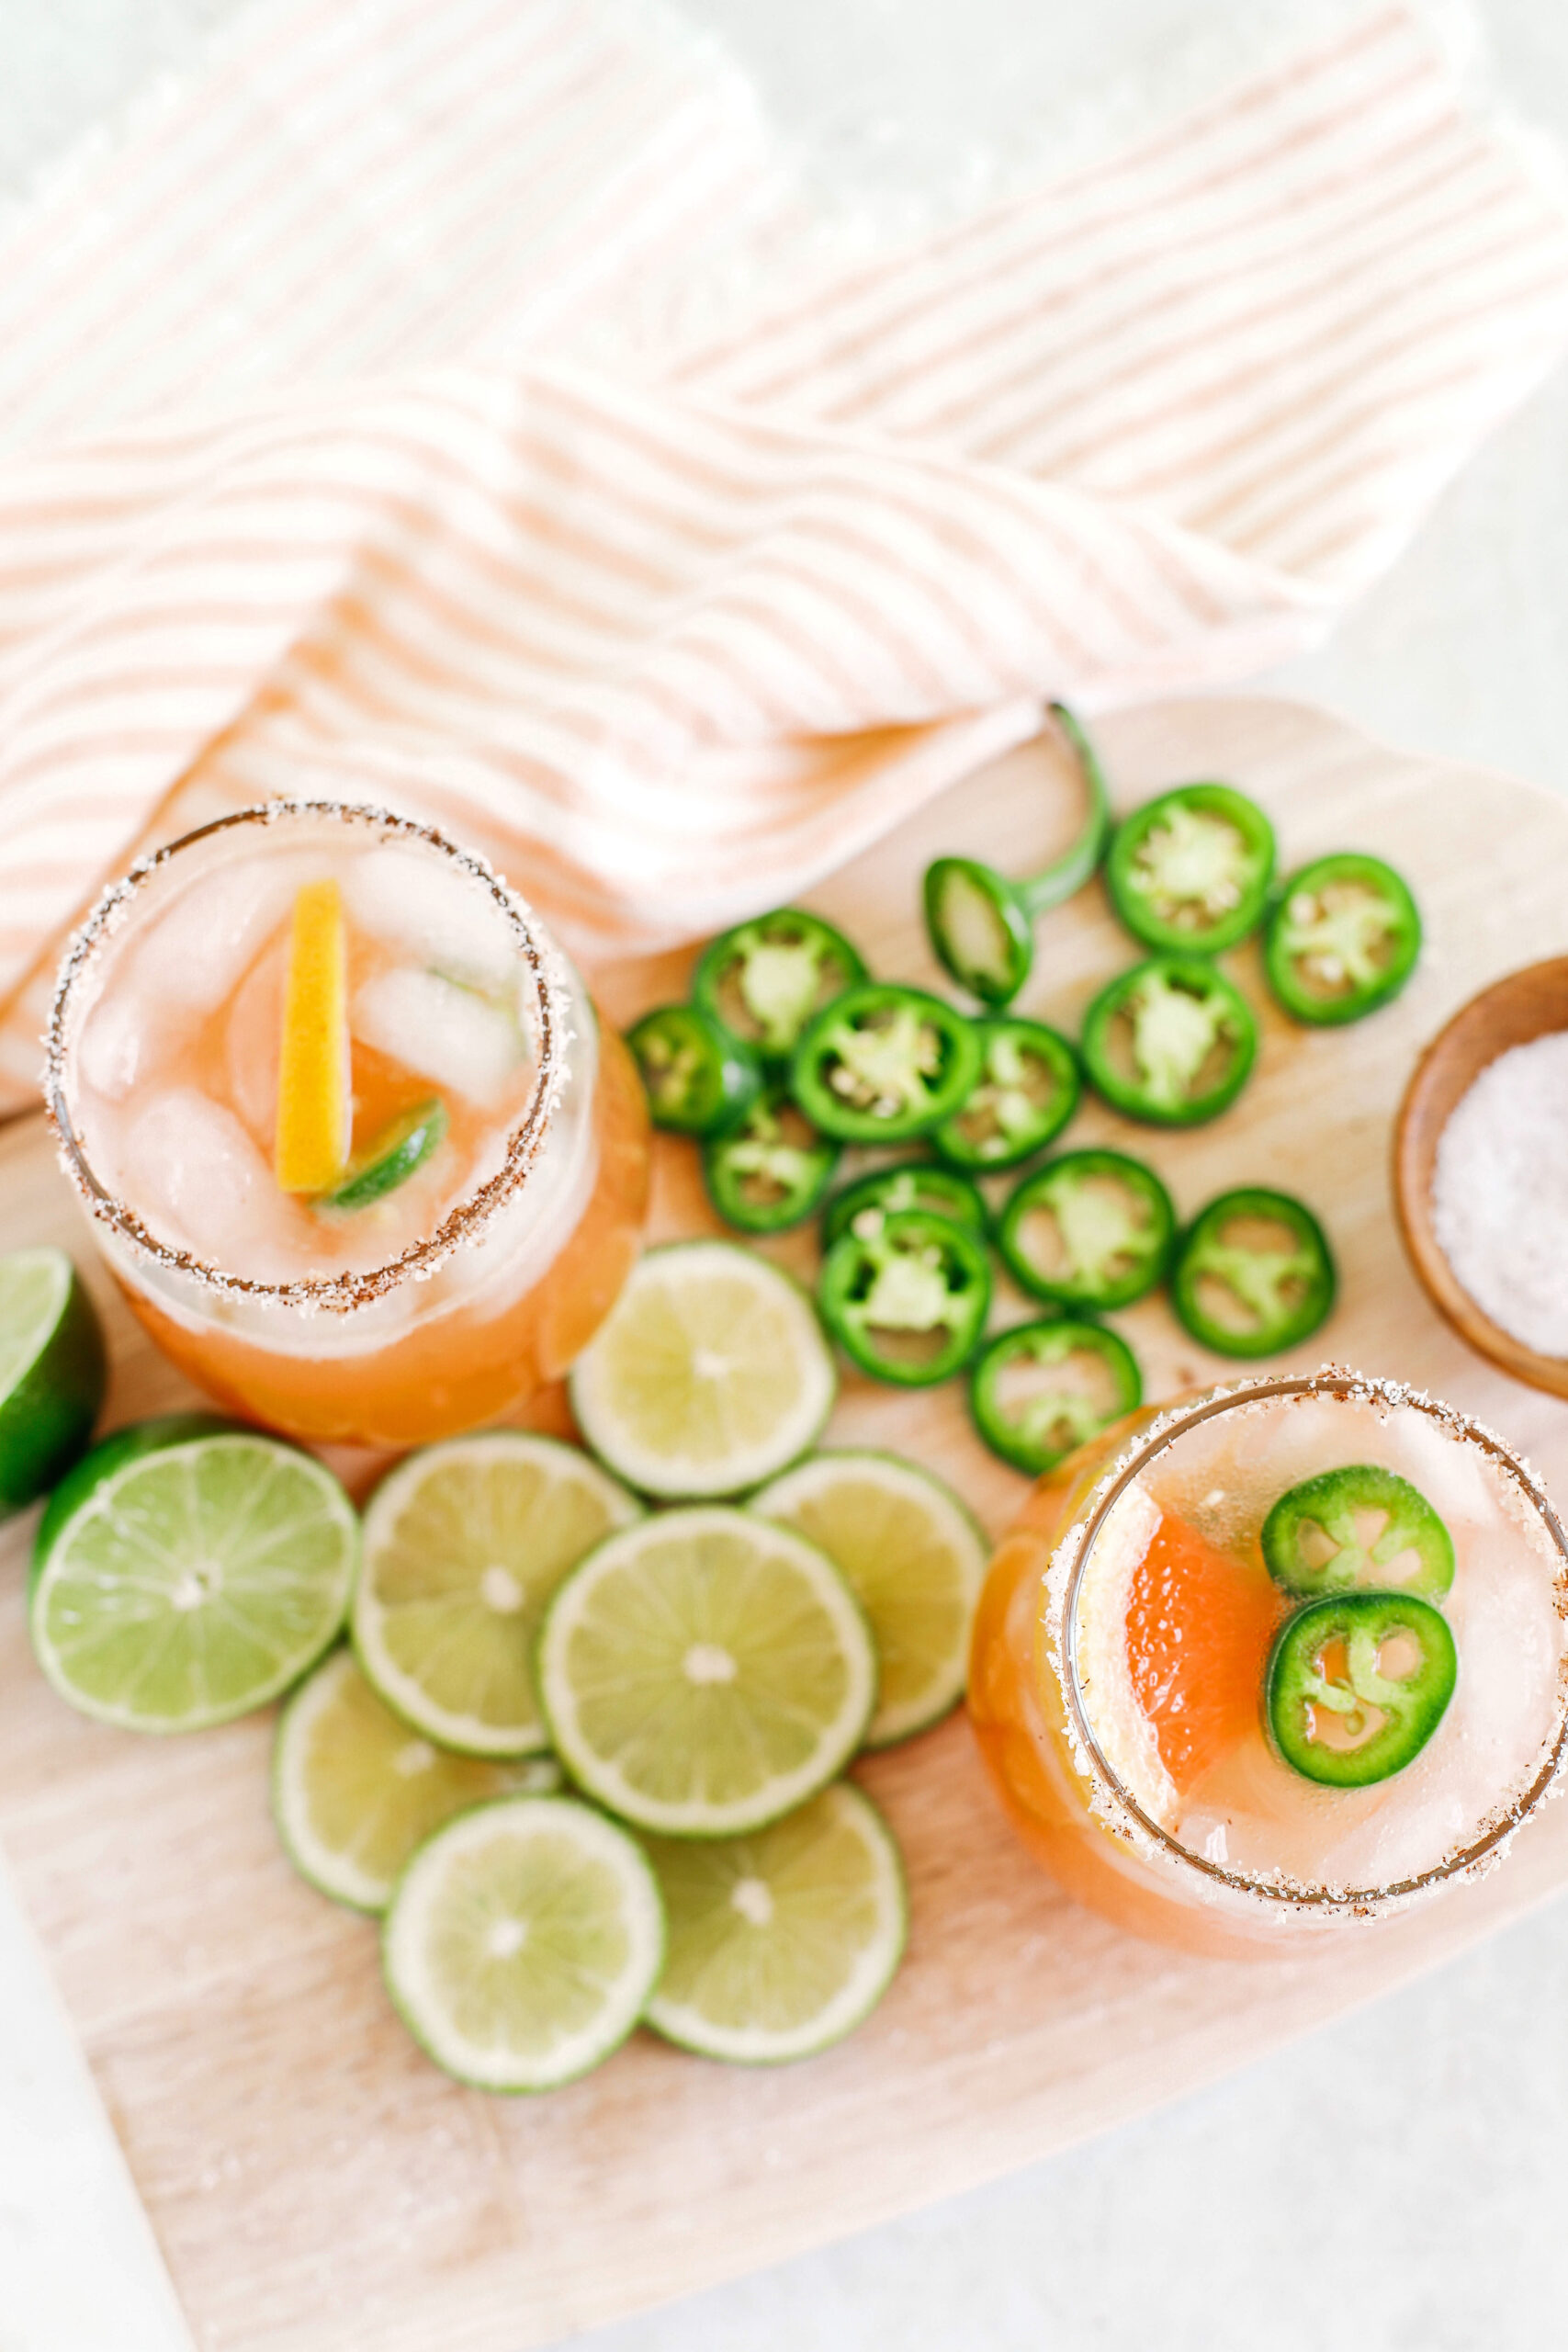 This Spicy Grapefruit Paloma is the perfect summer cocktail made with fresh limes and grapefruit, your favorite tequila, sparkling water, and my sweet and spicy jalapeño honey simple syrup!